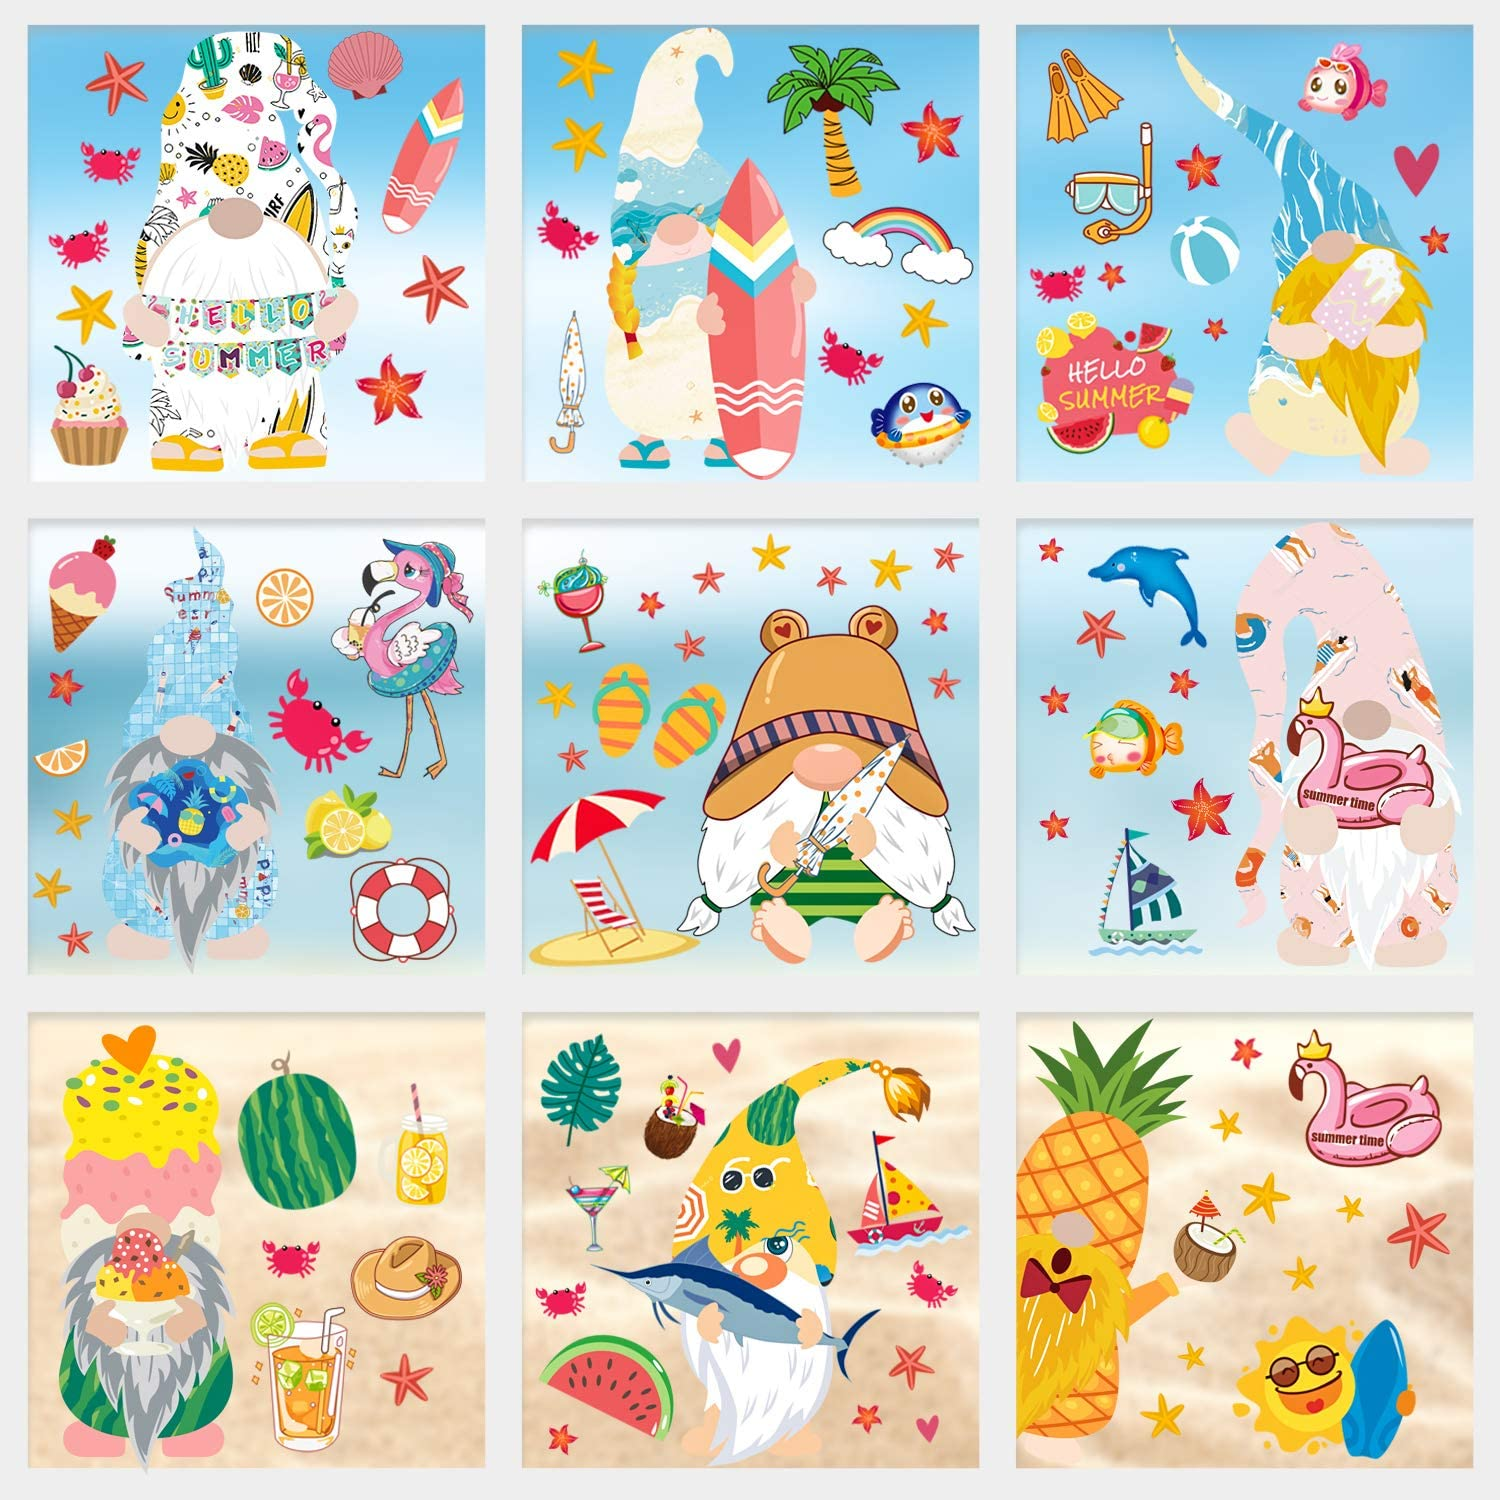 Adurself 103PCS Summer Gnome Window Clings Hawaii Pineapple Beach Tropical Window Decals Stickers for Pool Luau Hawaiian Party Home Kitchen Office Fridge Decorations (9 Sheets)